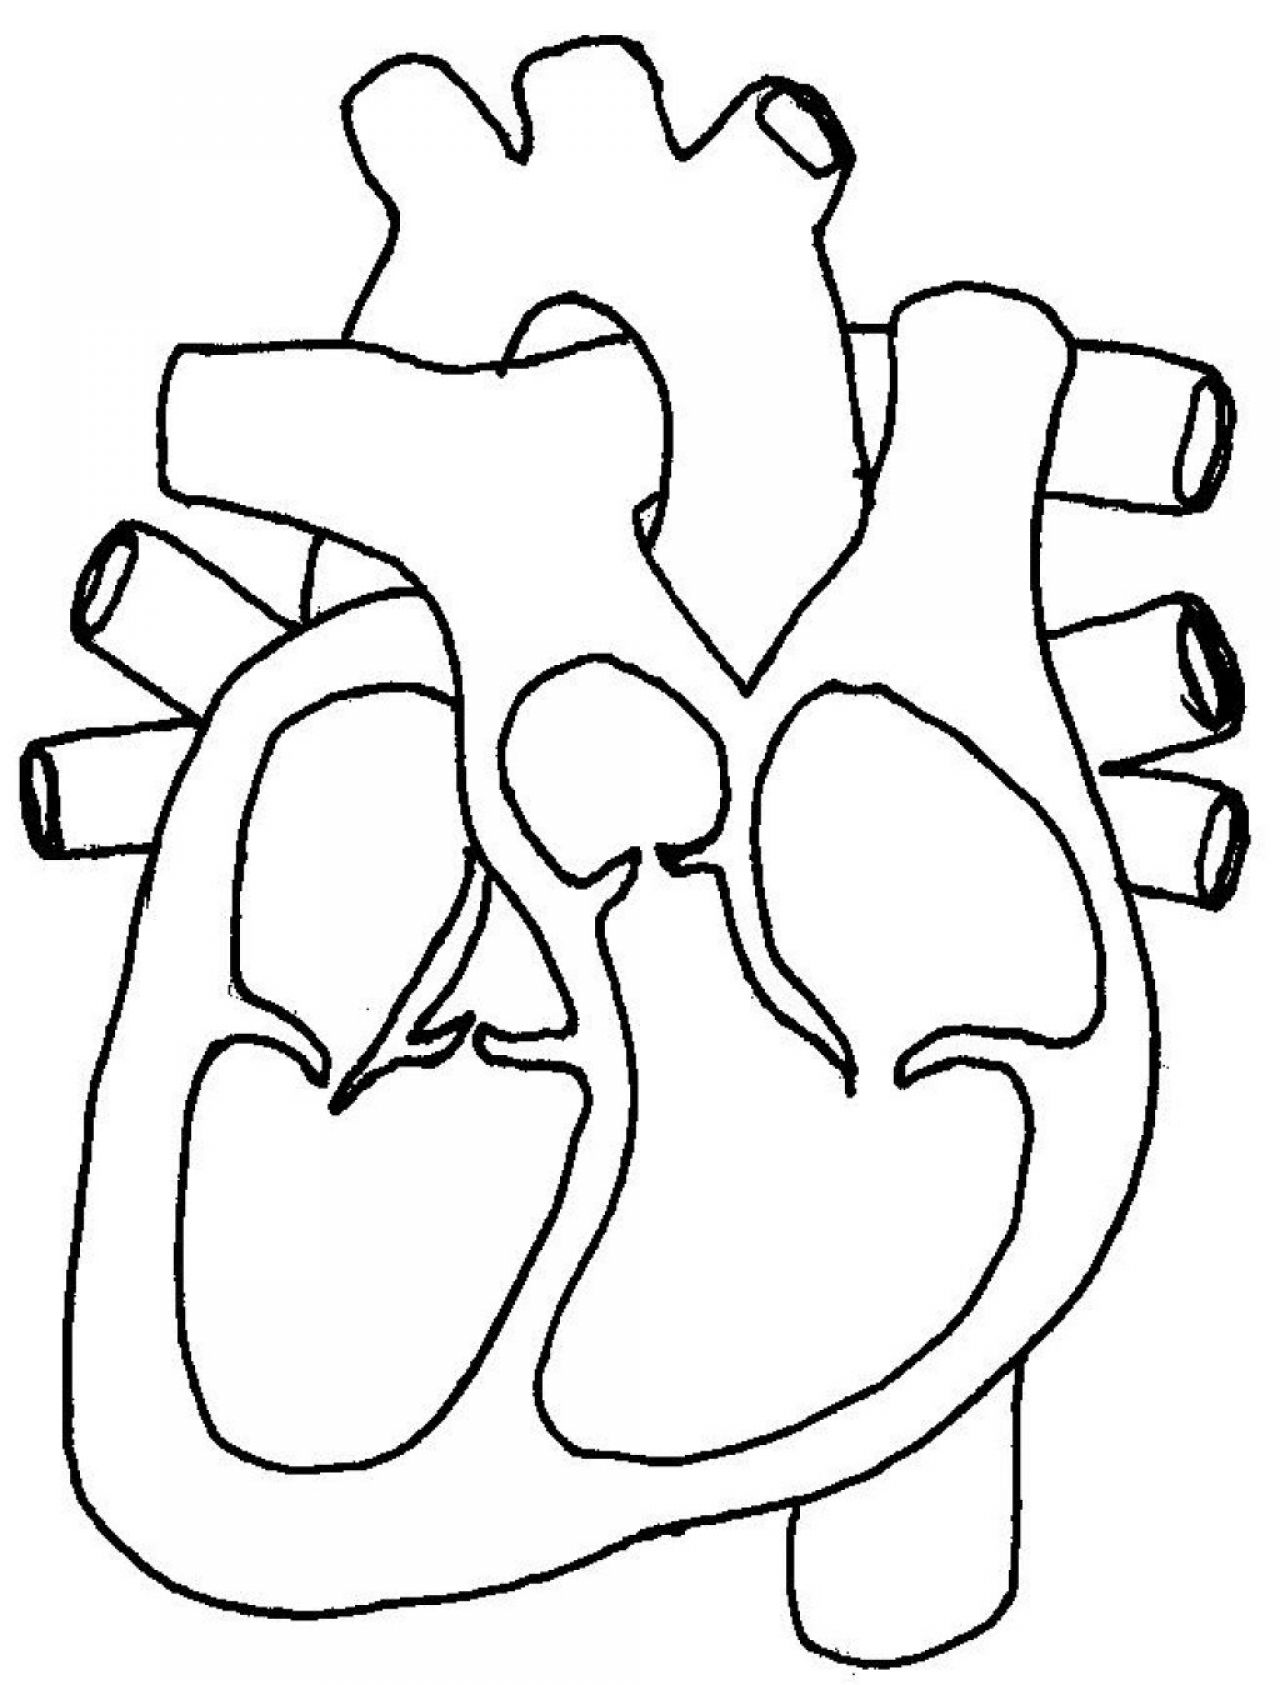 Free Blank Heart Diagram Download Free Clip Art Free Clip Art On Clipart Library